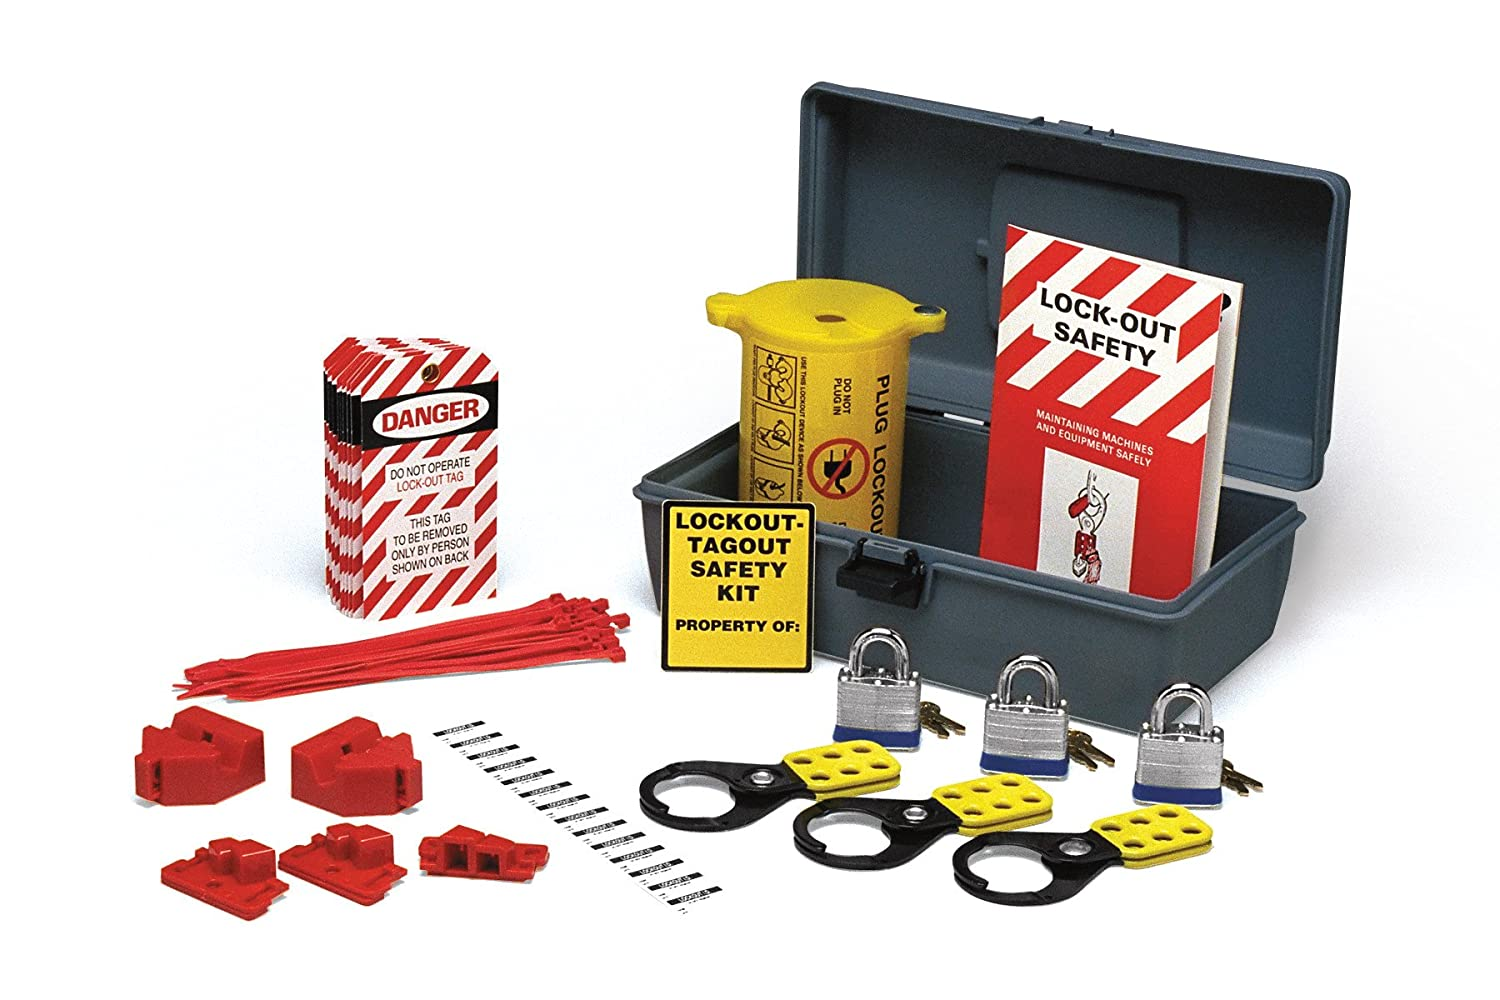 brady economy electrical lockout toolbox kit 45618 industrial lockout tagout kits amazoncom industrial scientific - Lock Out Tag Out Kits